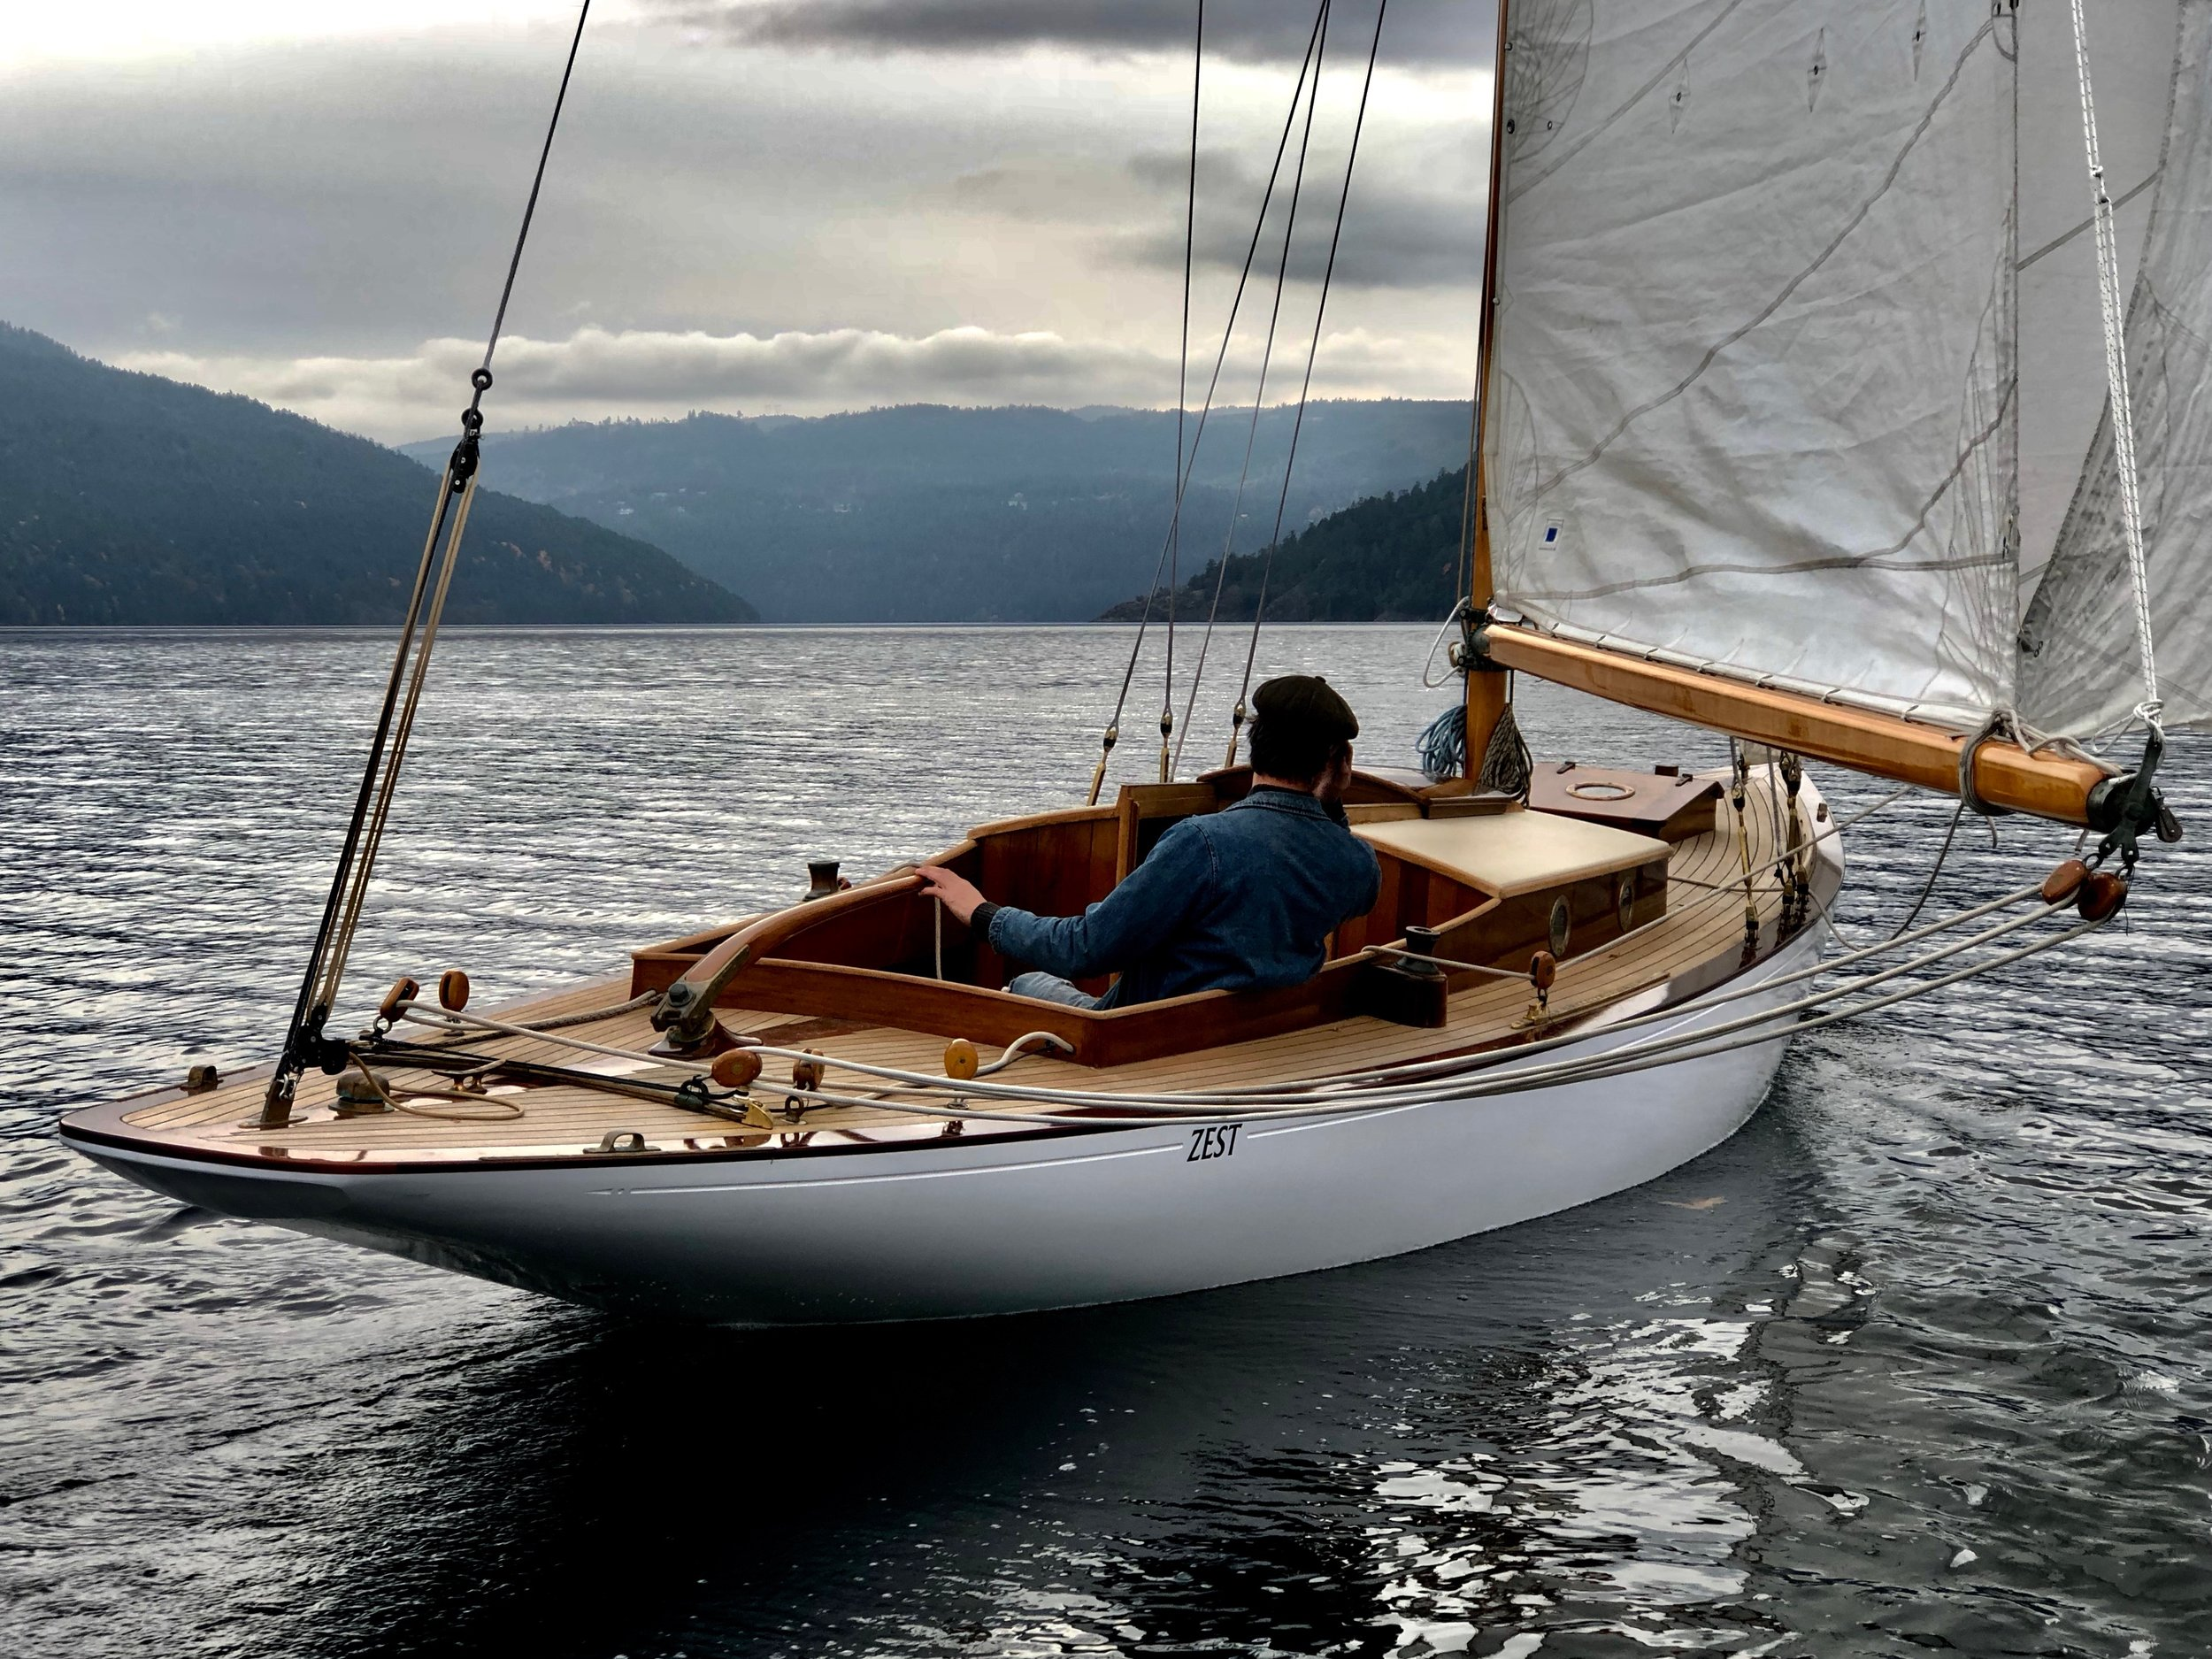 - Victoria Classic Boat Festival Awards:Best TenderBest Pulling BoatBest ReplicaBest RestorationBest Overall PowerBest Overall SailBest Work BoatBest Motor Sailor2019 Classic Boat Magazine Winner:Best Restoration for Carlotta 1899